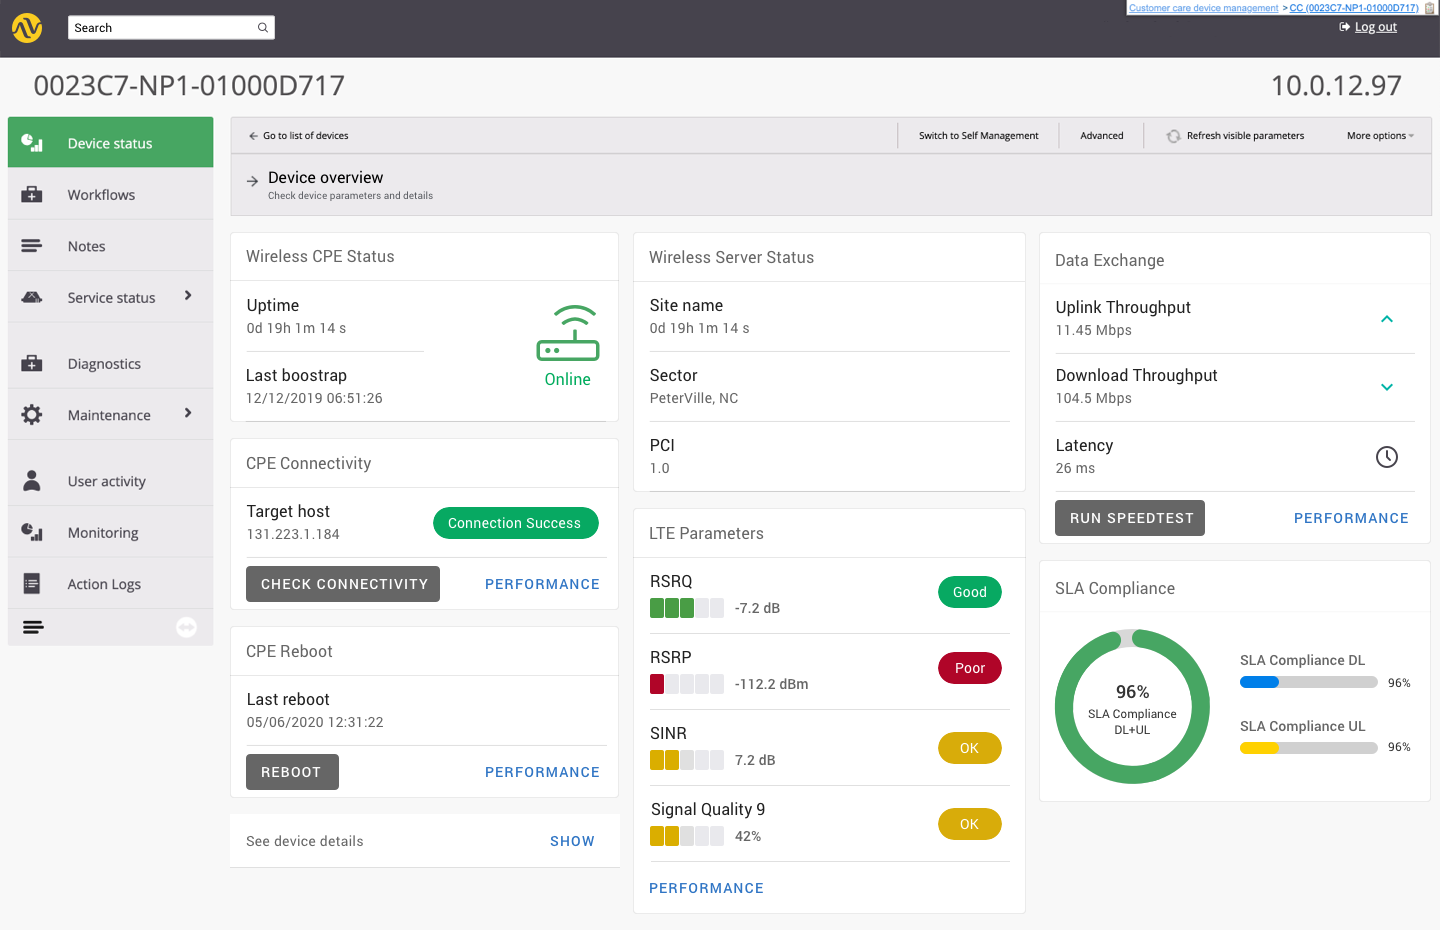 Unified Management Platform